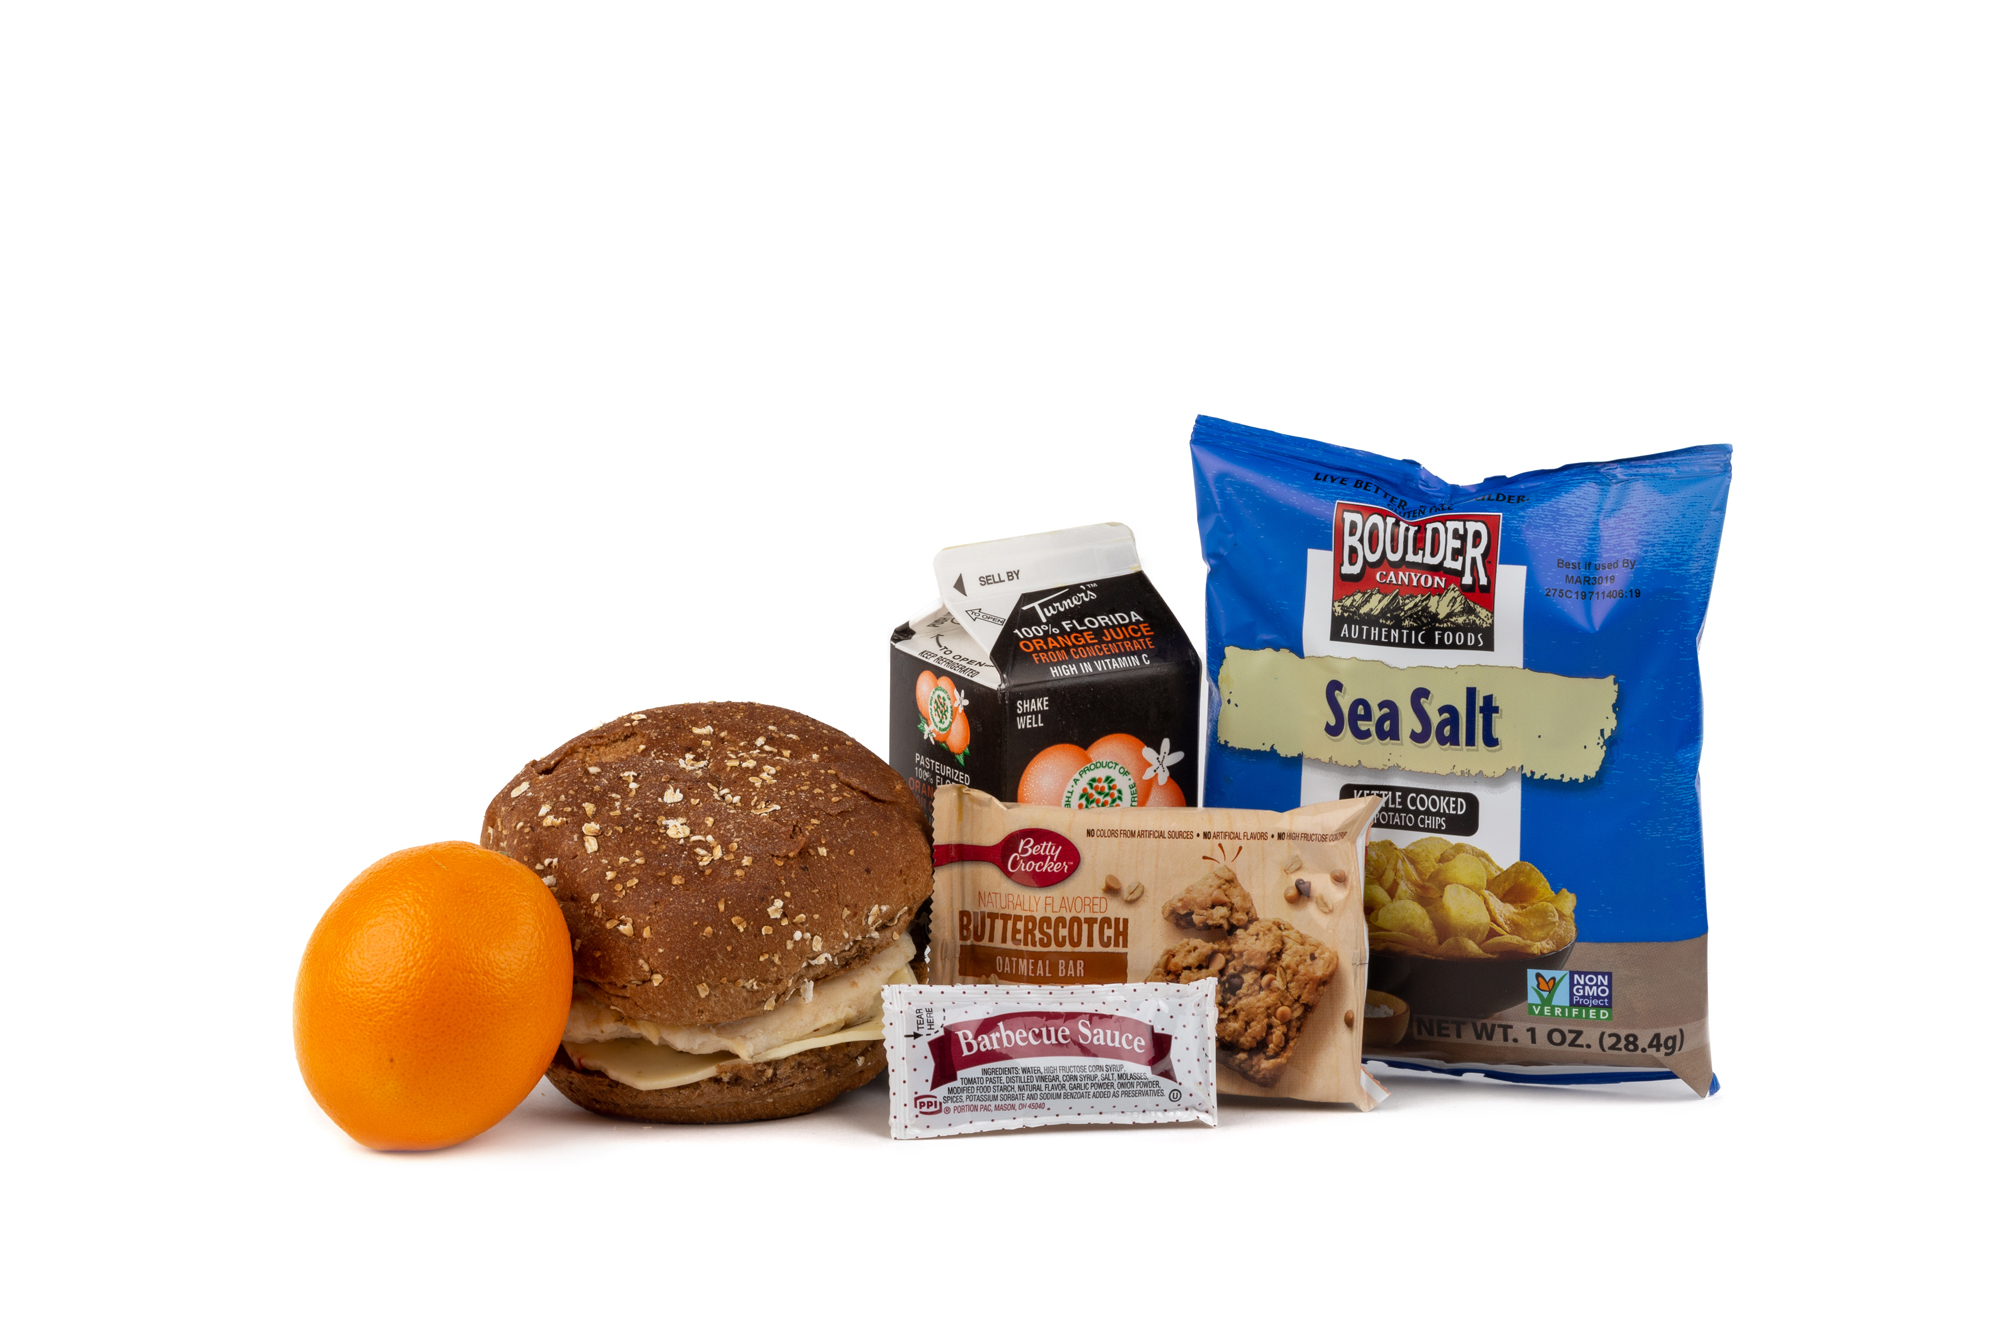 MK02 - Fresh Chicken Barbeque  Grilled Chicken Breast/ Pepper Jack Cheese on Wheat Bun BBQ Sauce Packet Orange Juice Chip Potato Bag Boulder Canyon w/ Sea Salt Juice Orange Butterscotch Oatmeal Bar